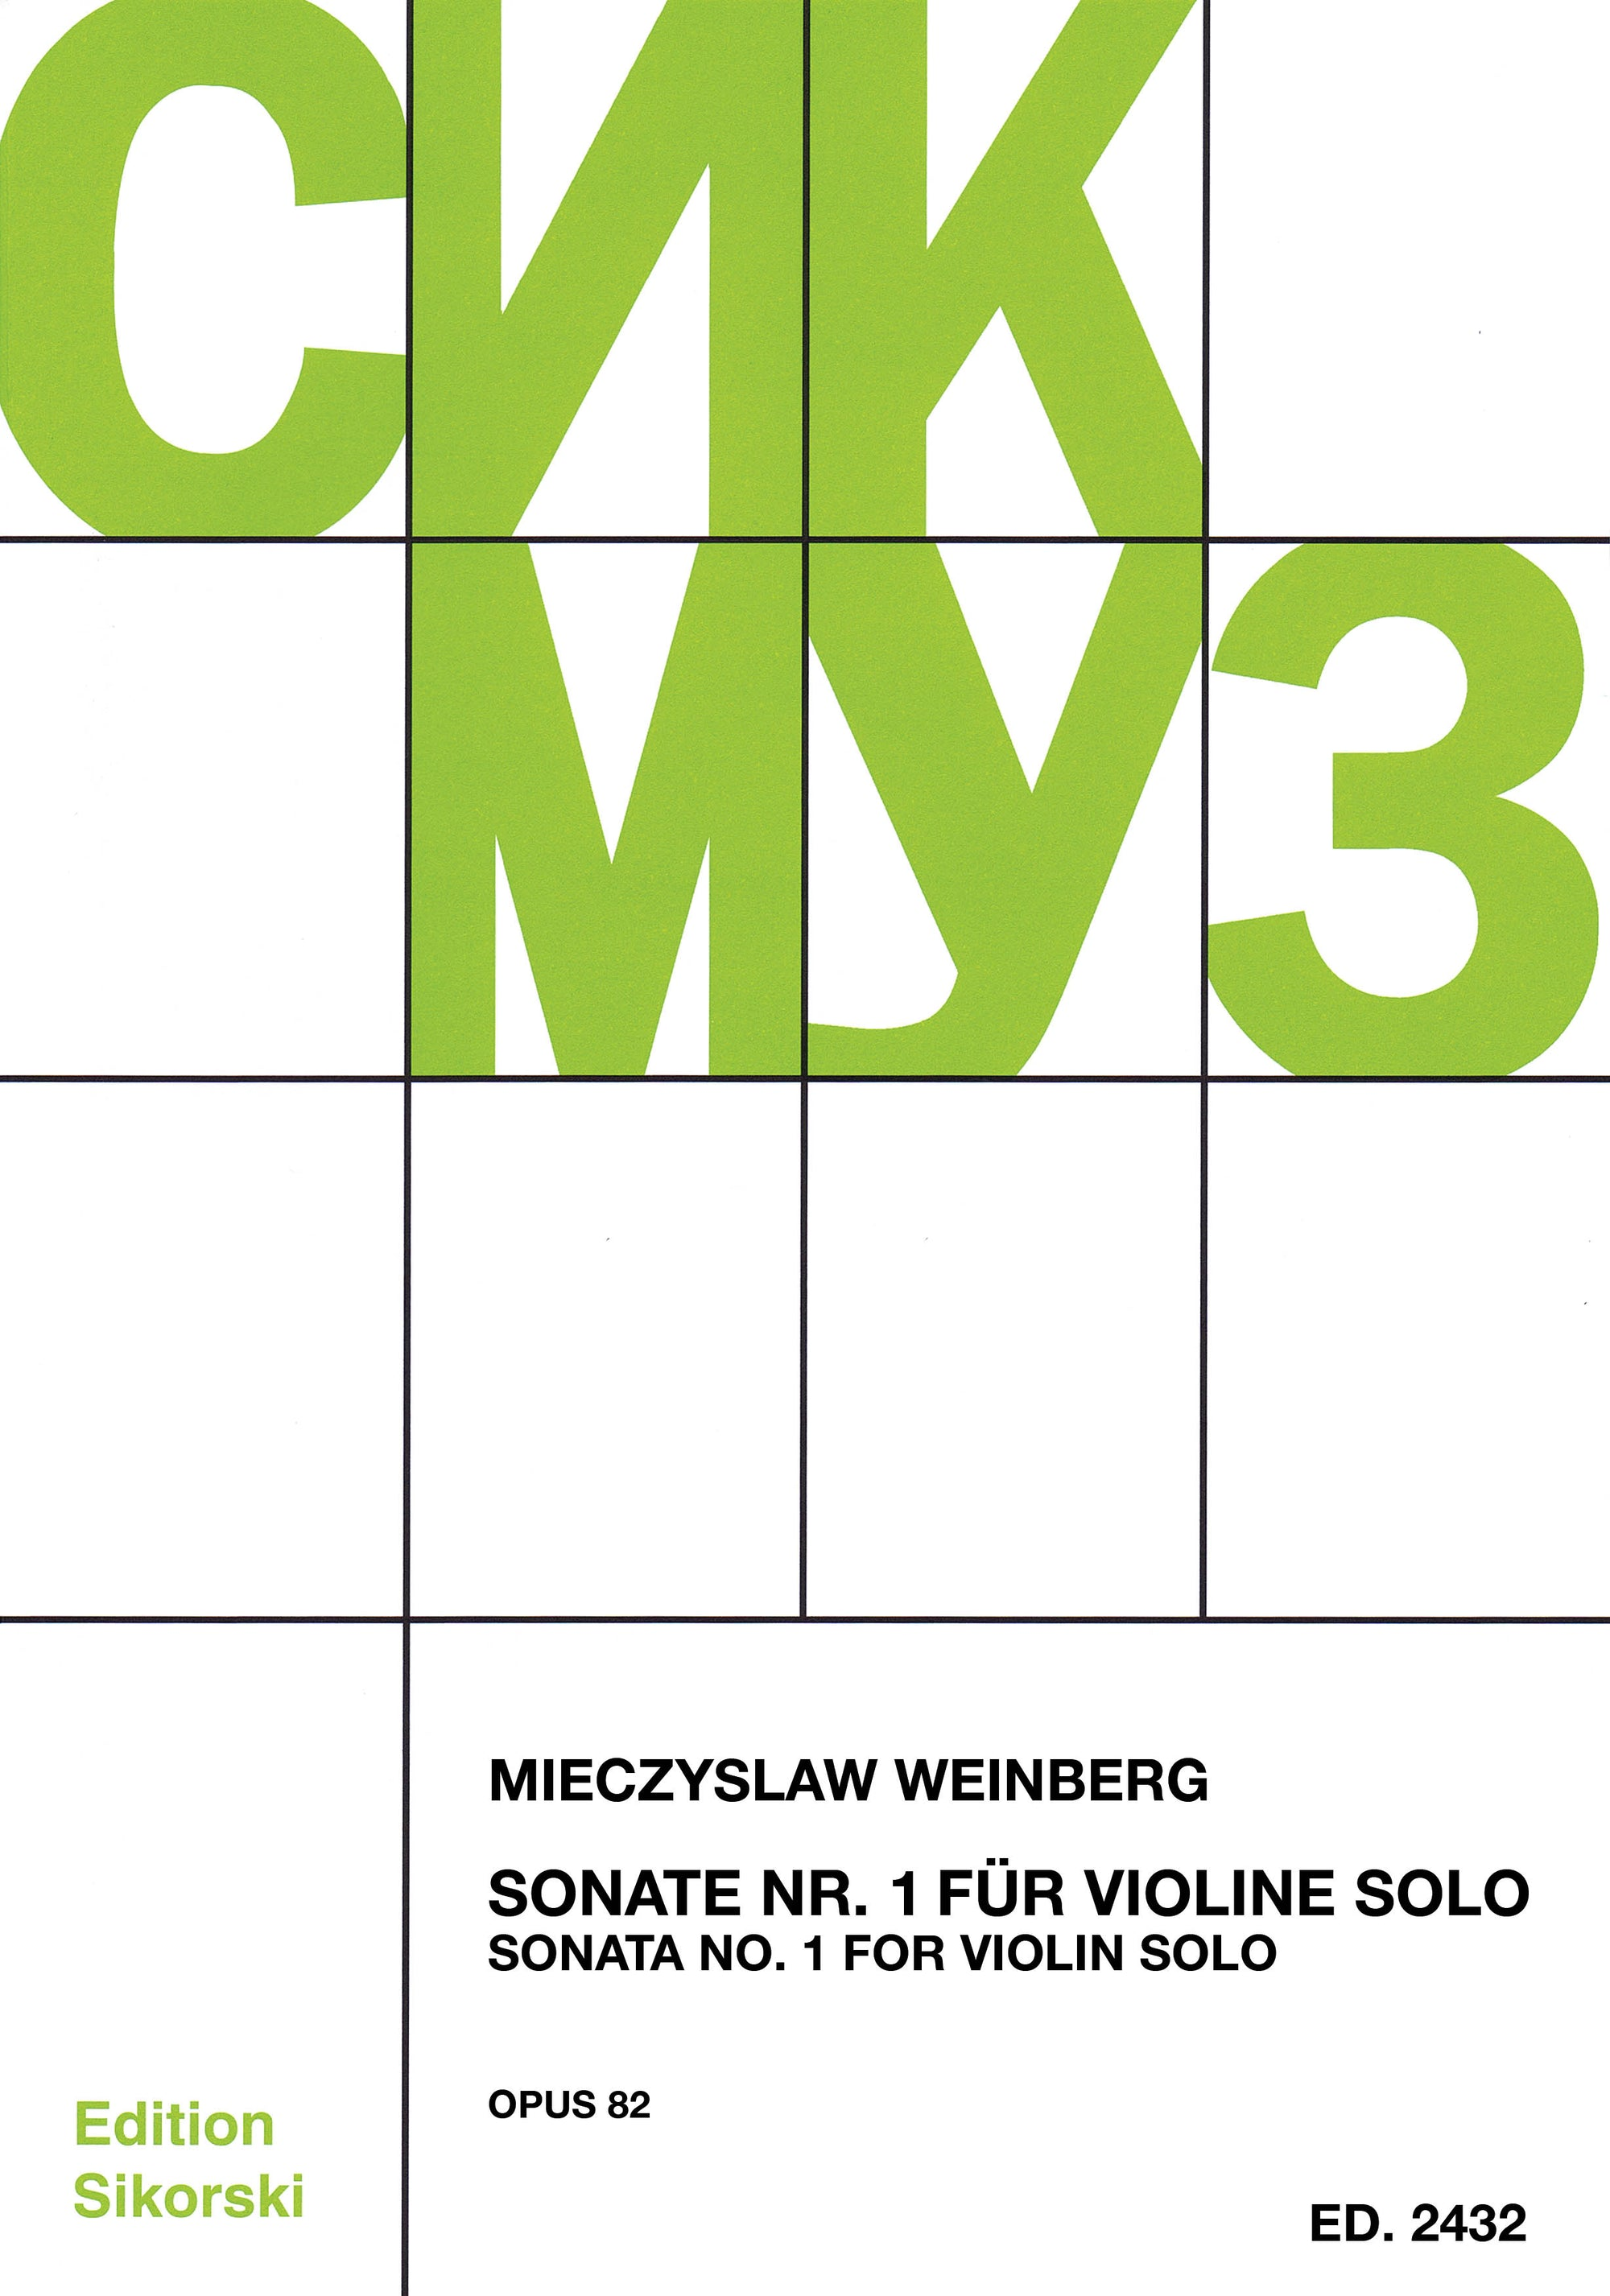 Weinberg: Sonata No. 1 for Solo Violin, Op. 82